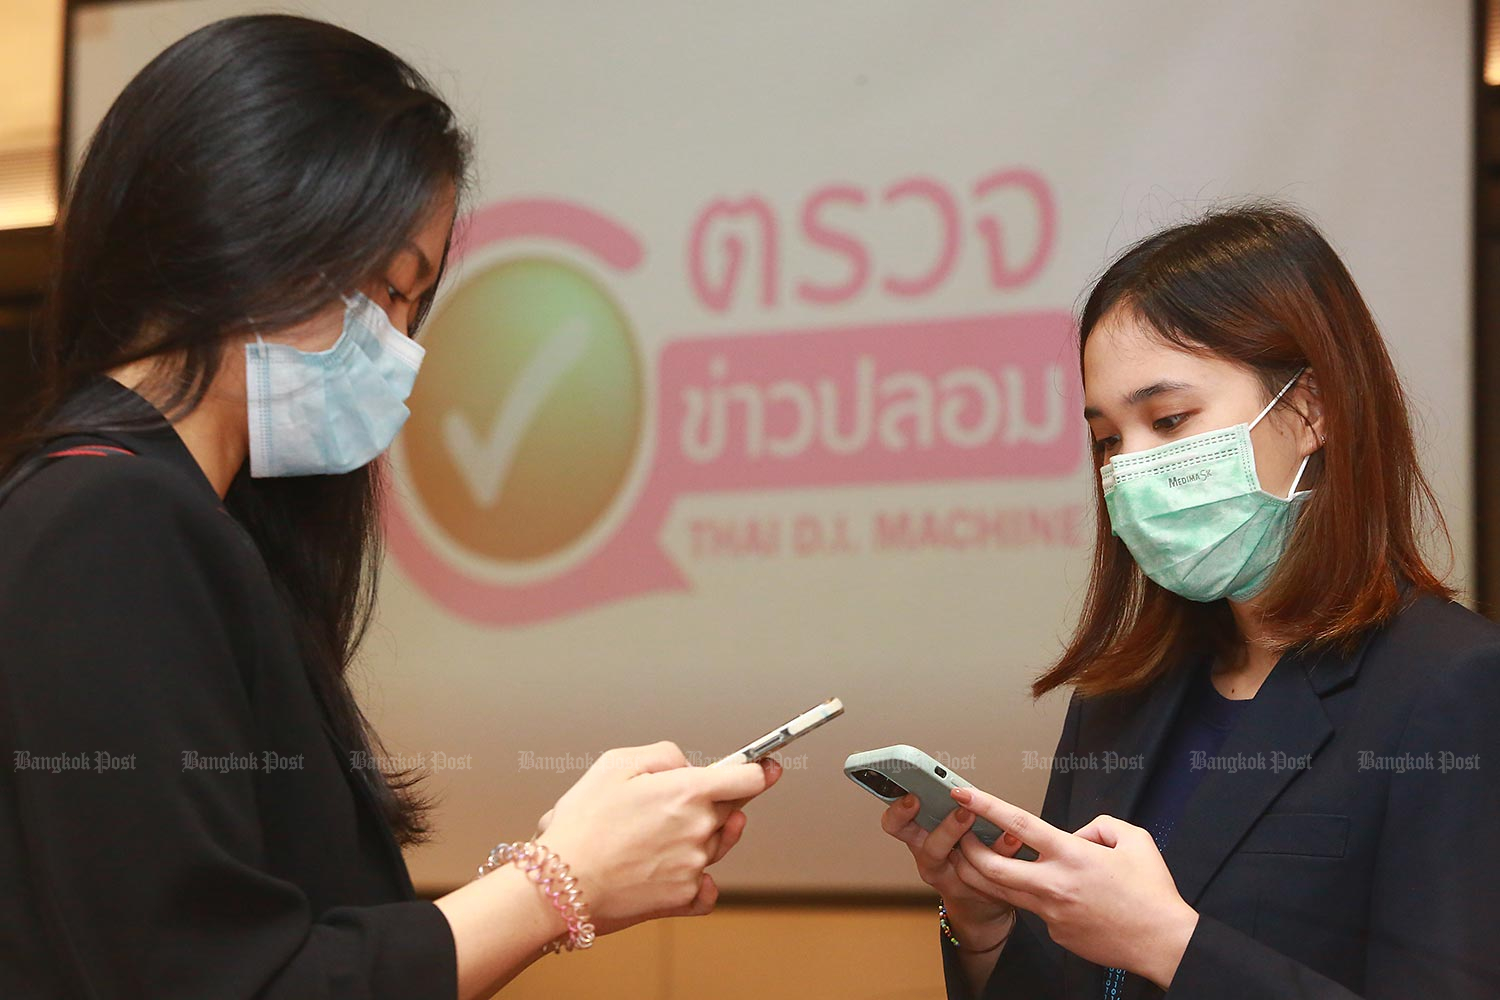 Fact-checking website Thai D.I. Machine was launched on International Fact-Checking Day 2021 yesterday to allow the general public to fact-check suspicious information by themselves. (Photo by Somchai Poomlard)